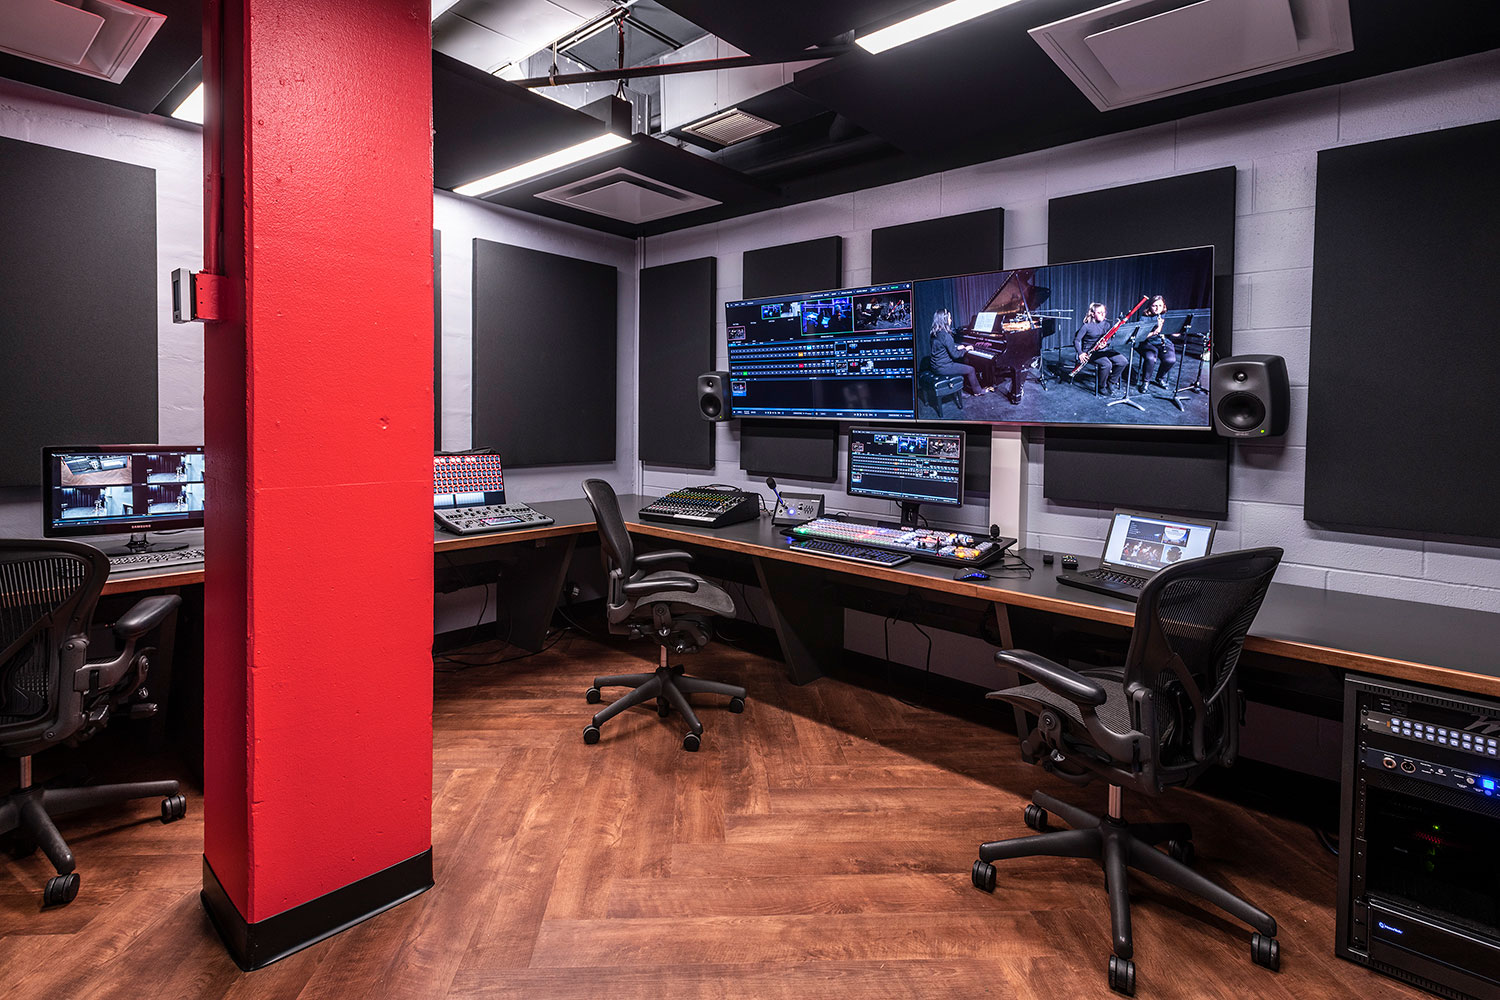 Rensselaer Polytechnic Institute (RPI) brand new state-of-the-art audio production facilities, designed by WSDG - Audio Production Lab